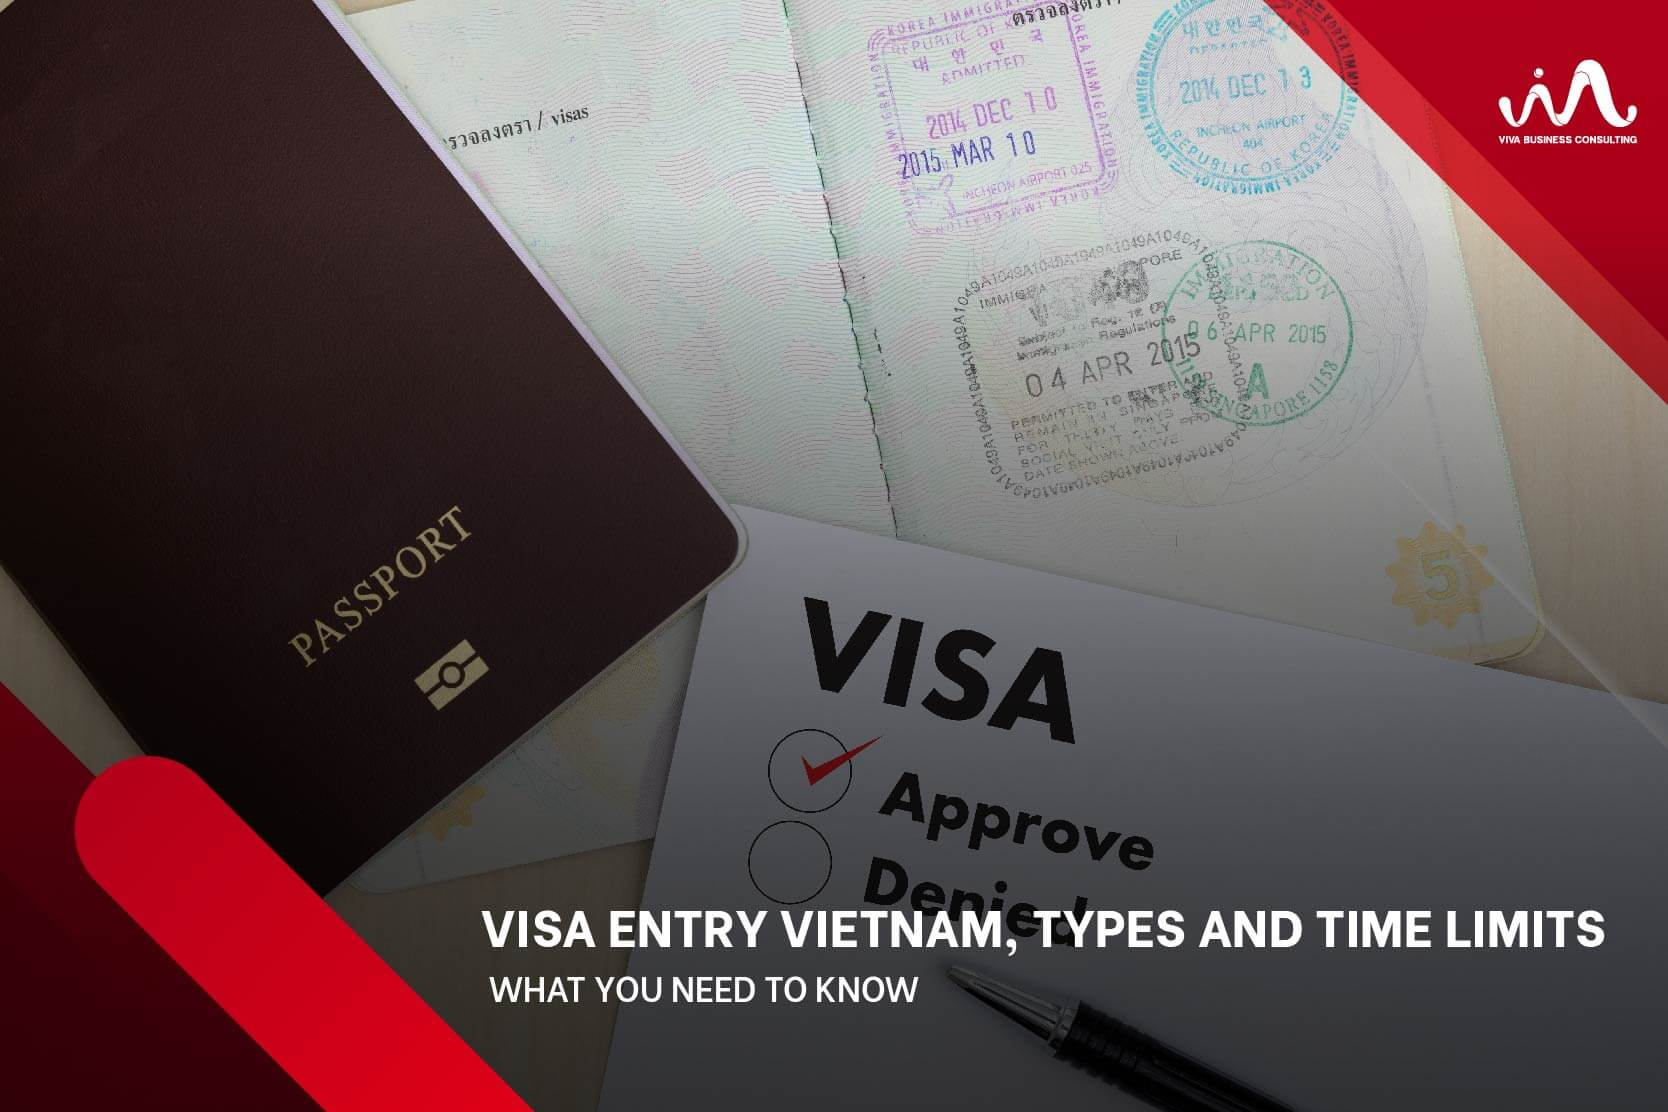 Visa And Time Limits To A Foreigner To Grant Entry Into Vietnam - What You Need To Know